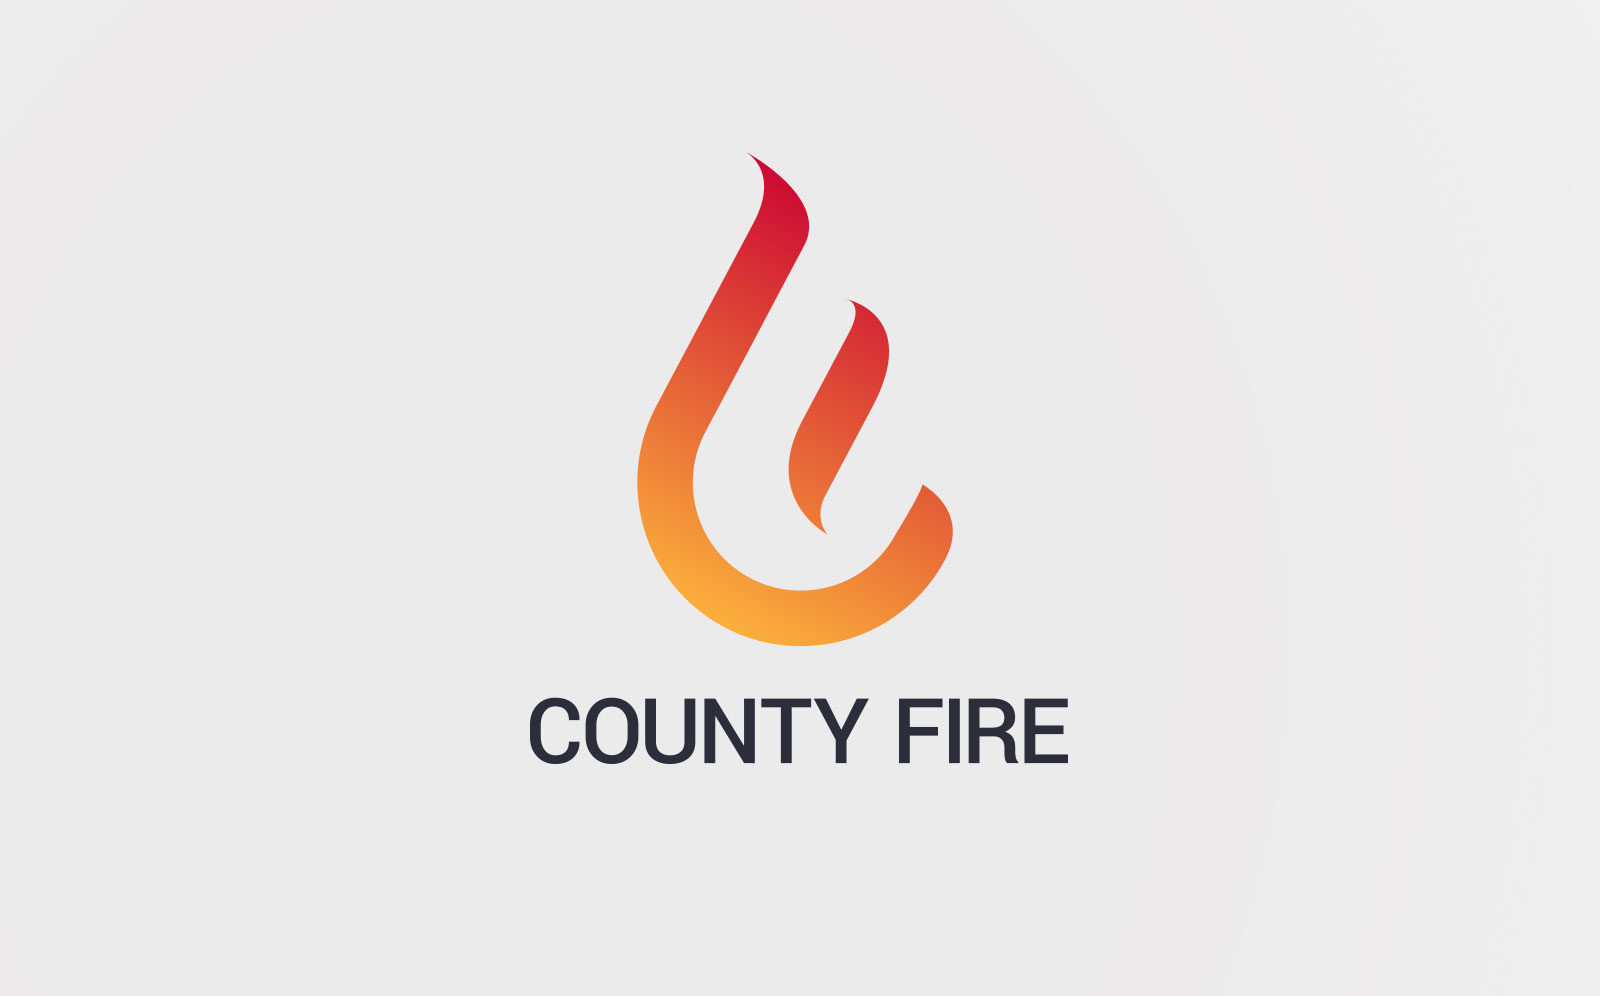 County fire logo